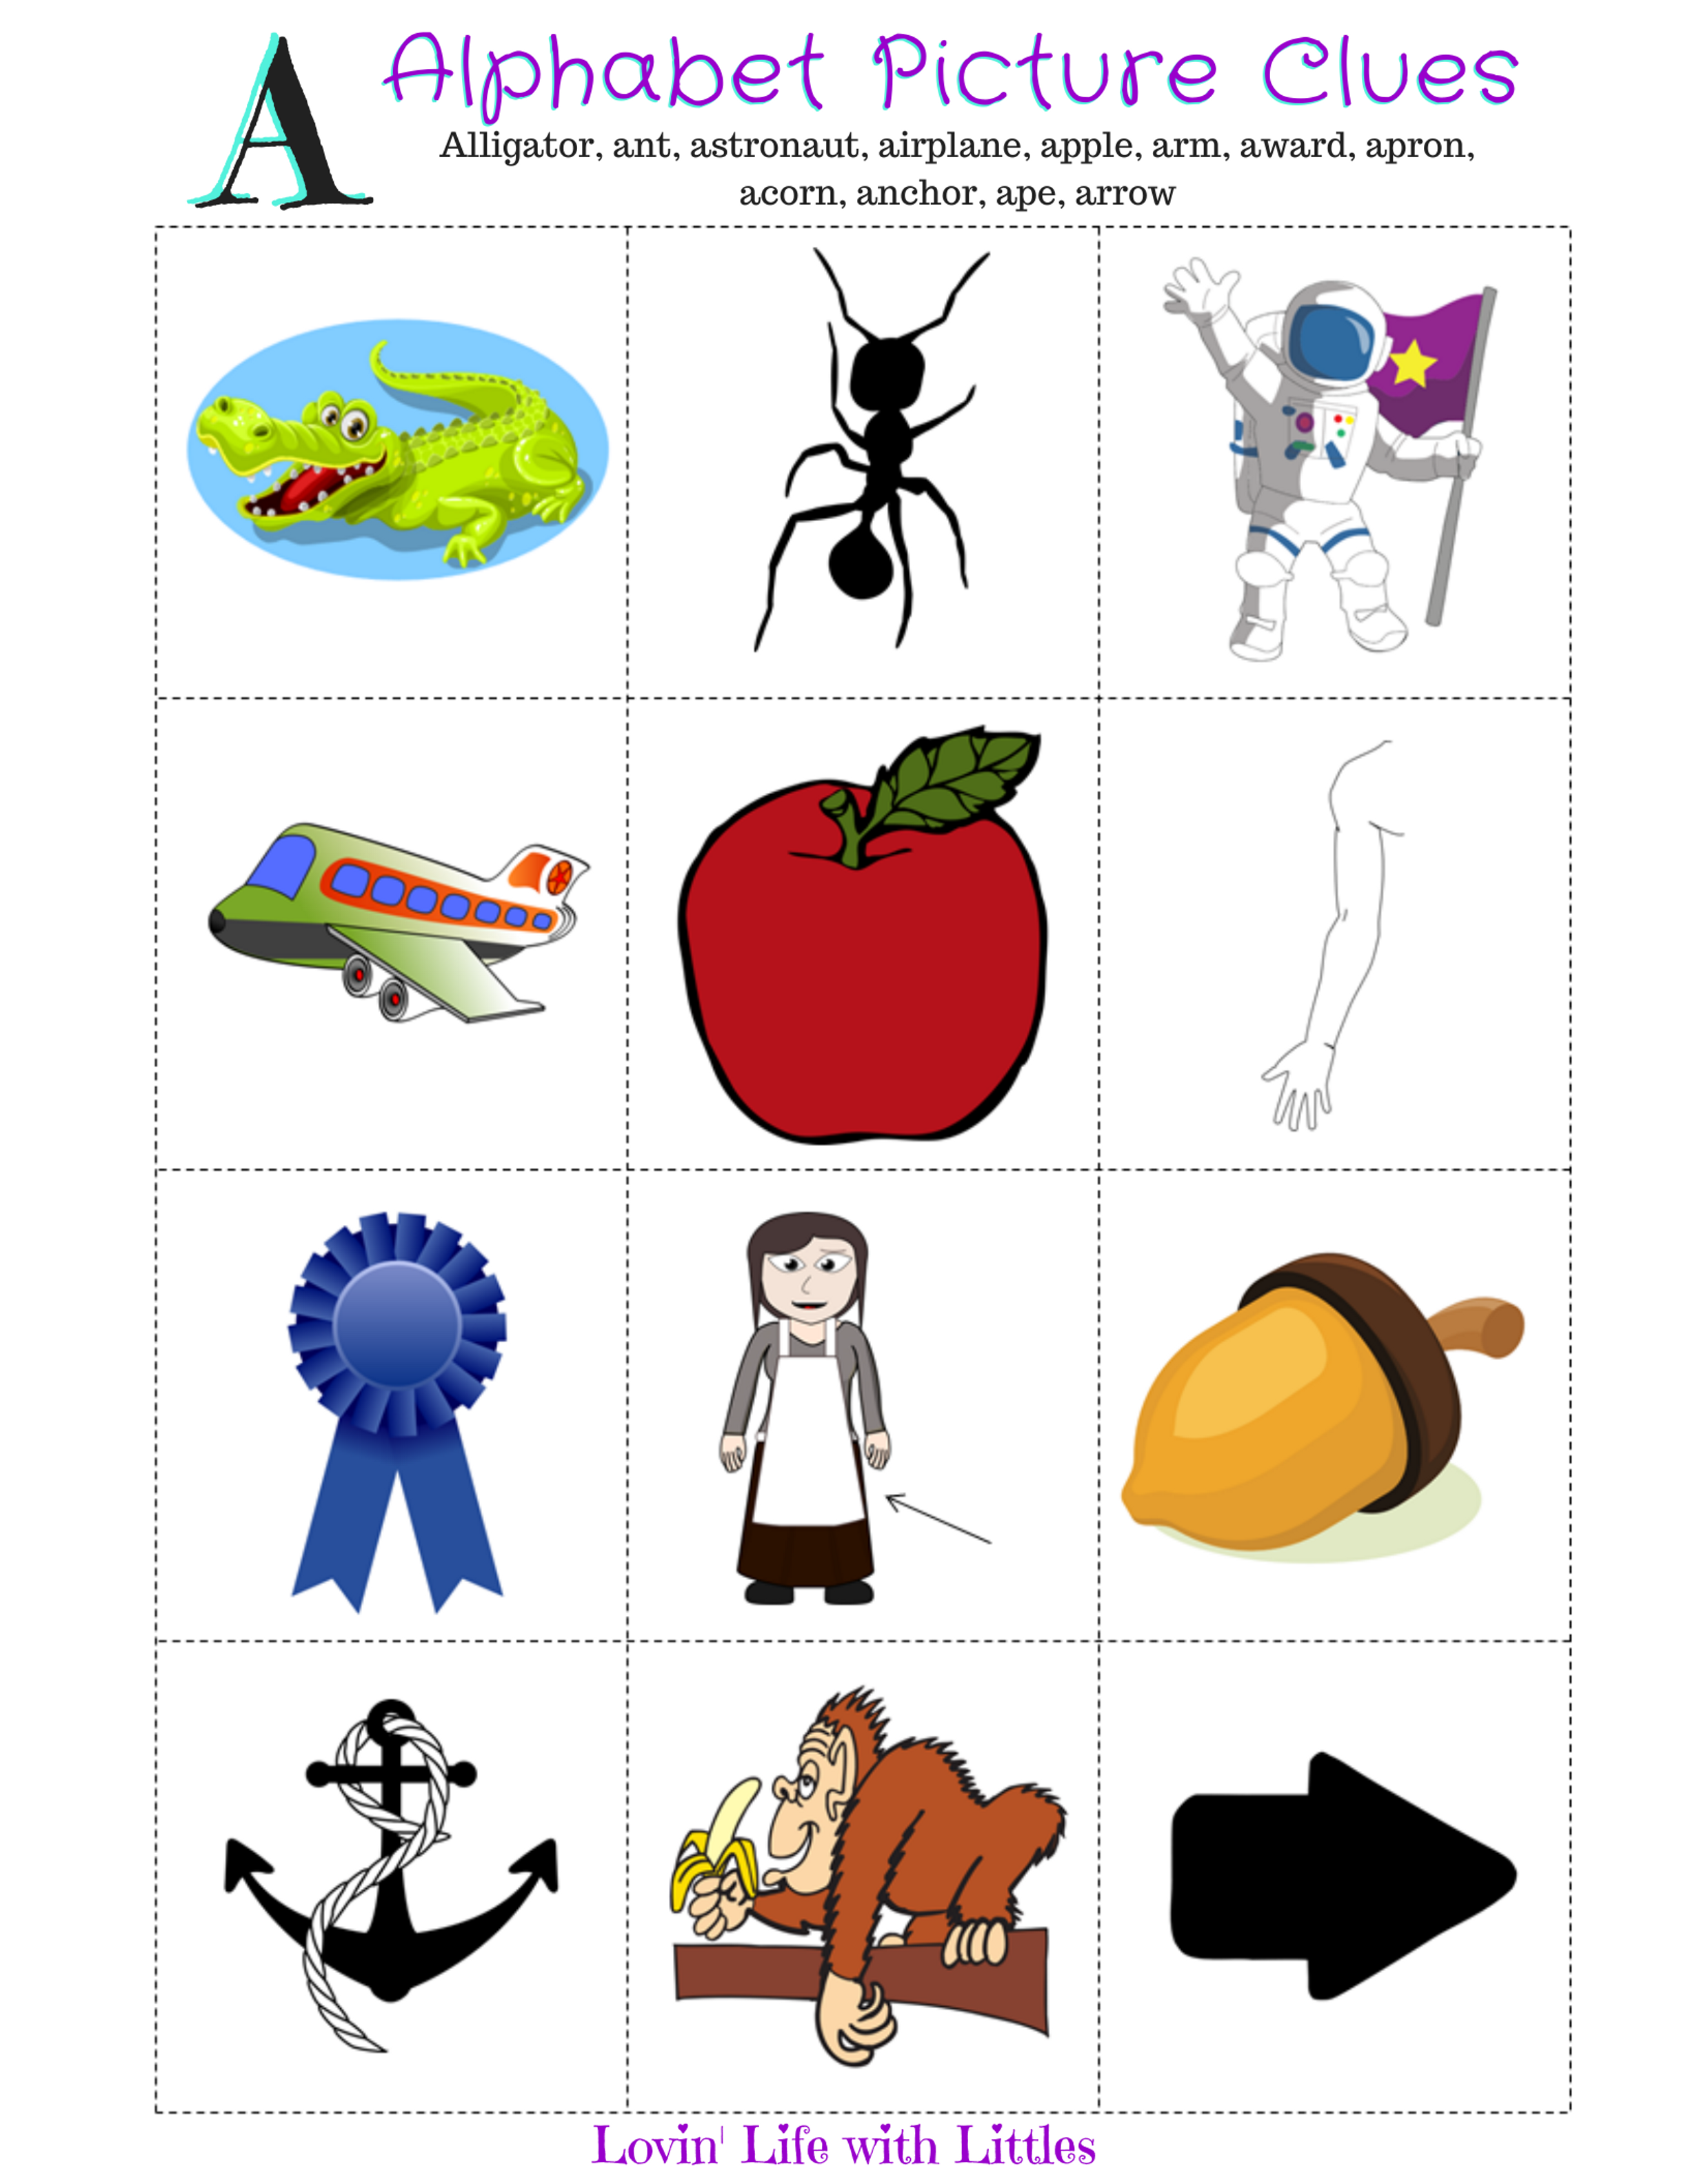 10 Fun Ways To Learn Letter Sounds With Alphabet Picture